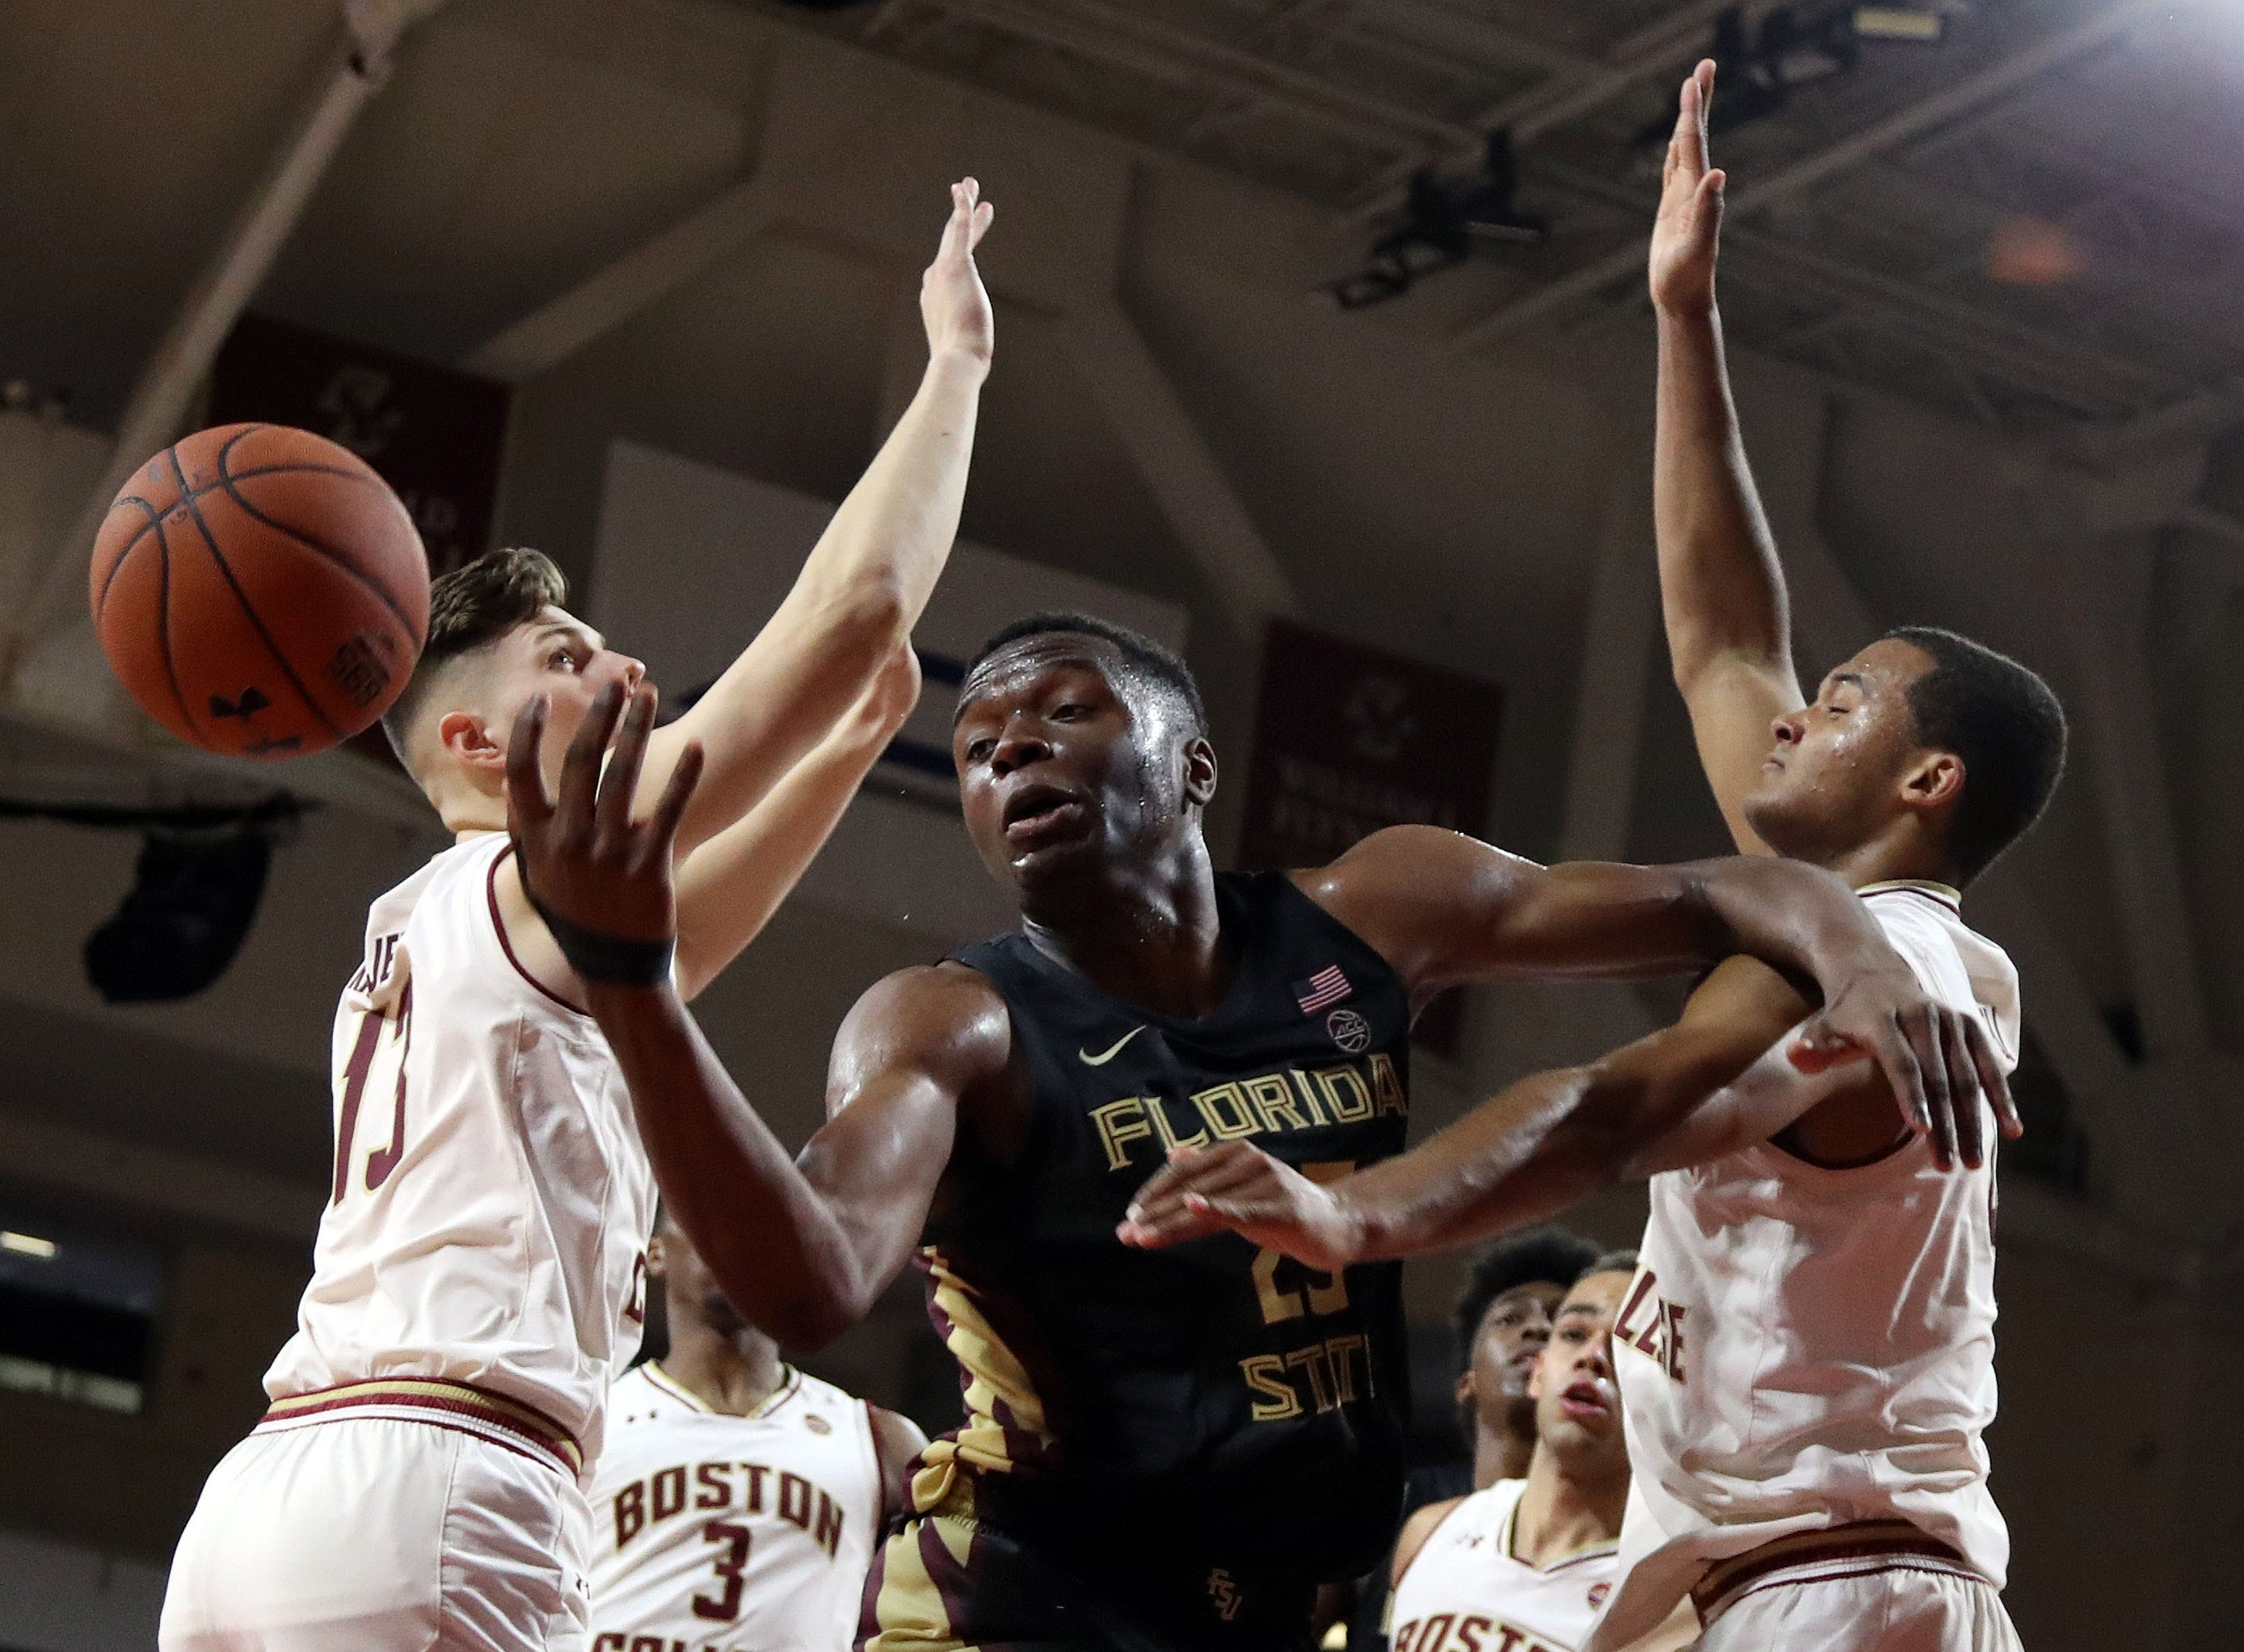 Jan 20, 2019; Chestnut Hill, MA, USA; Florida State Seminoles forward Mfiondu Kabengele (25) looses the ball defended by Boston College Eagles forward Luka Kraljevic (13) and Boston College Eagles forward Steffon Mitchell (41) during the second half at Conte Forum. Mandatory Credit: Paul Rutherford-USA TODAY Sports